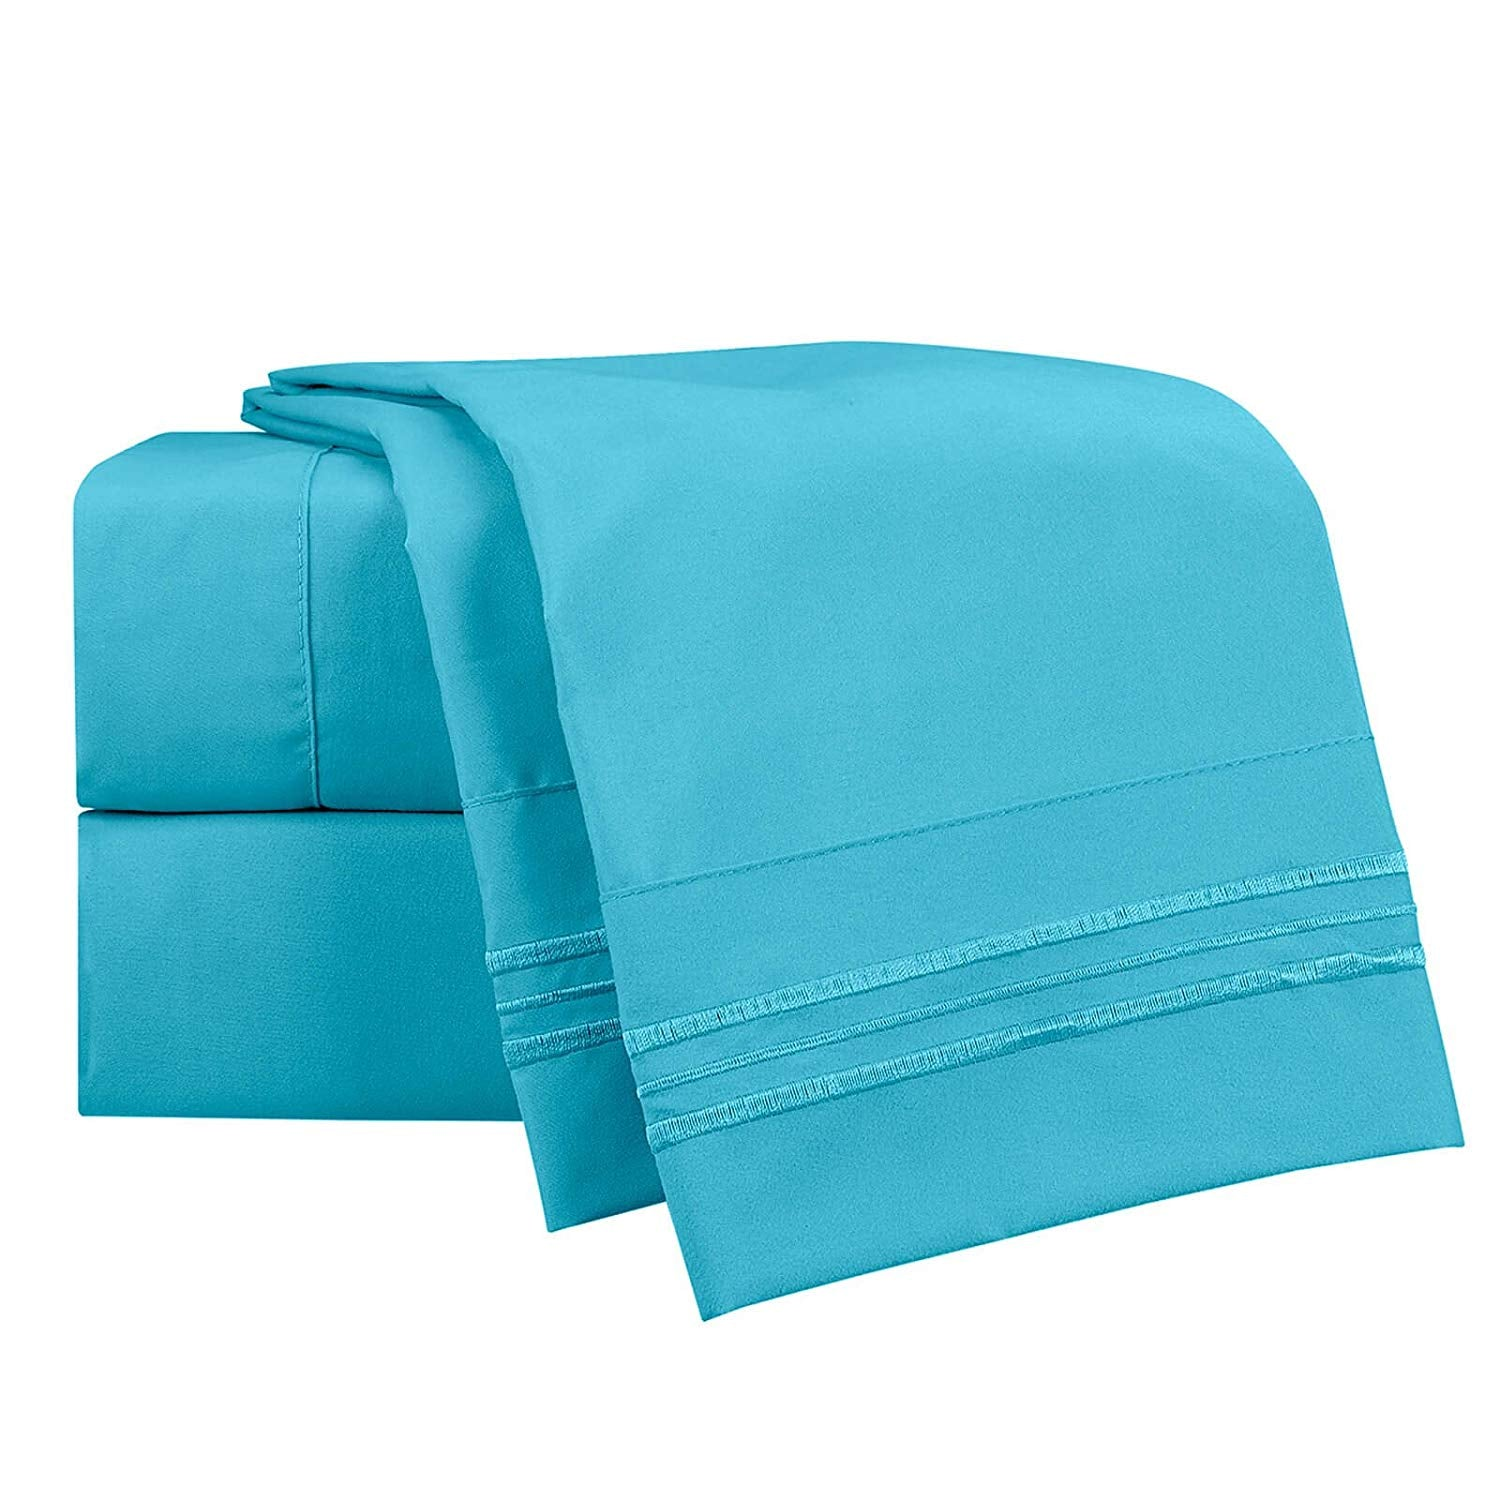 Clara Clark sheet set Teal